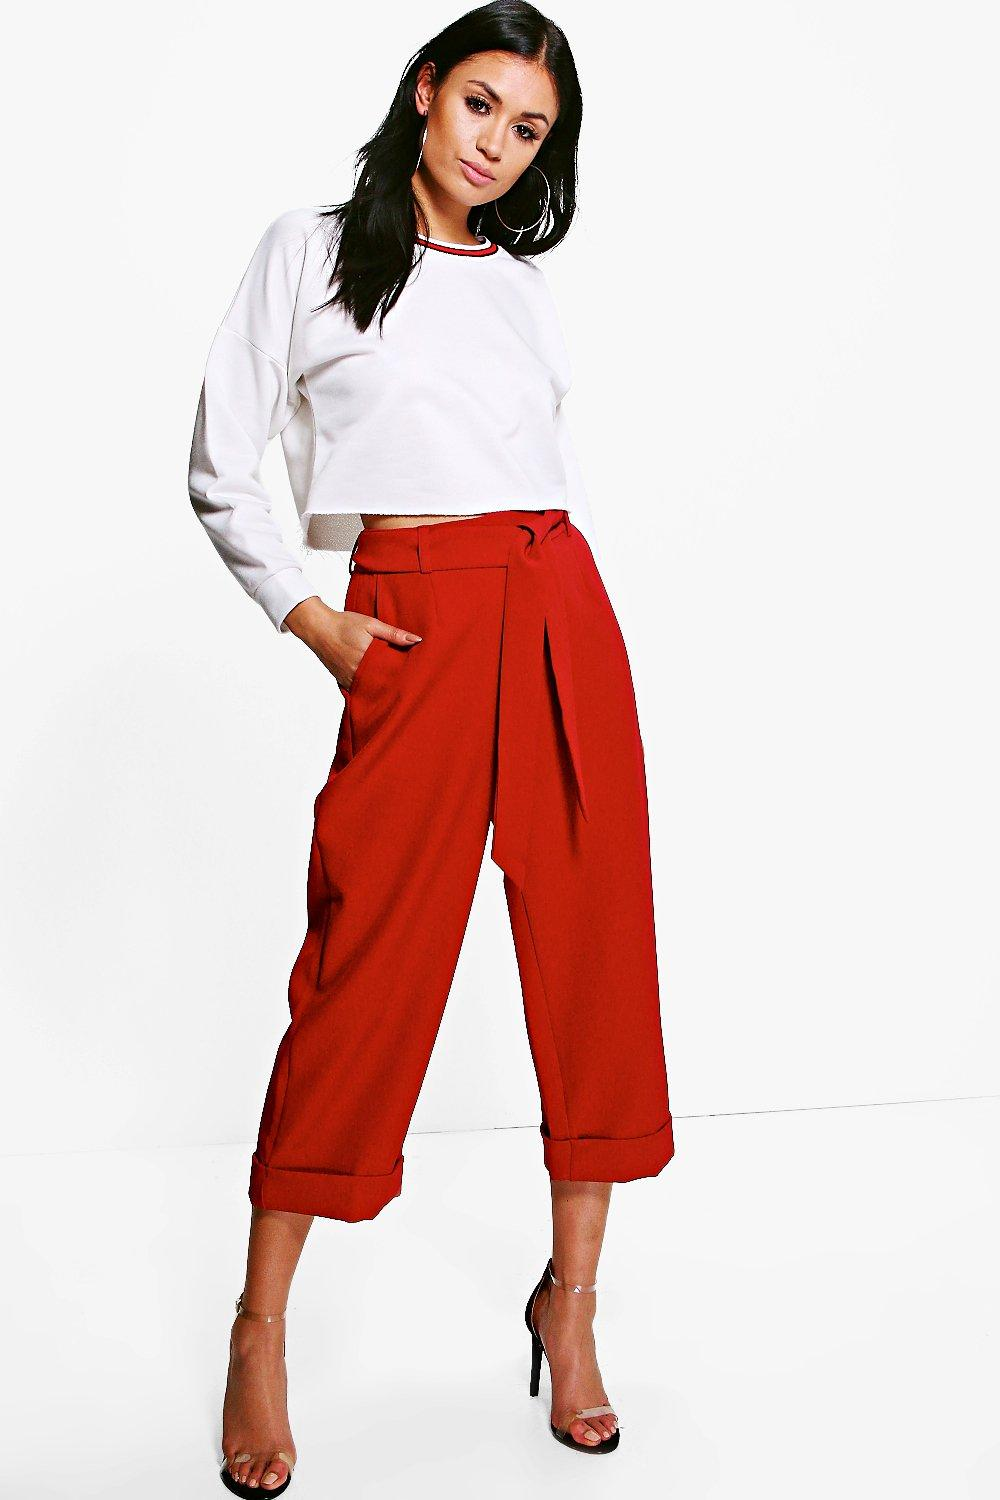 Are trouser turnups in fashion 1920x1080 HD 16:9 High Resolution Desktop Wallpapers for